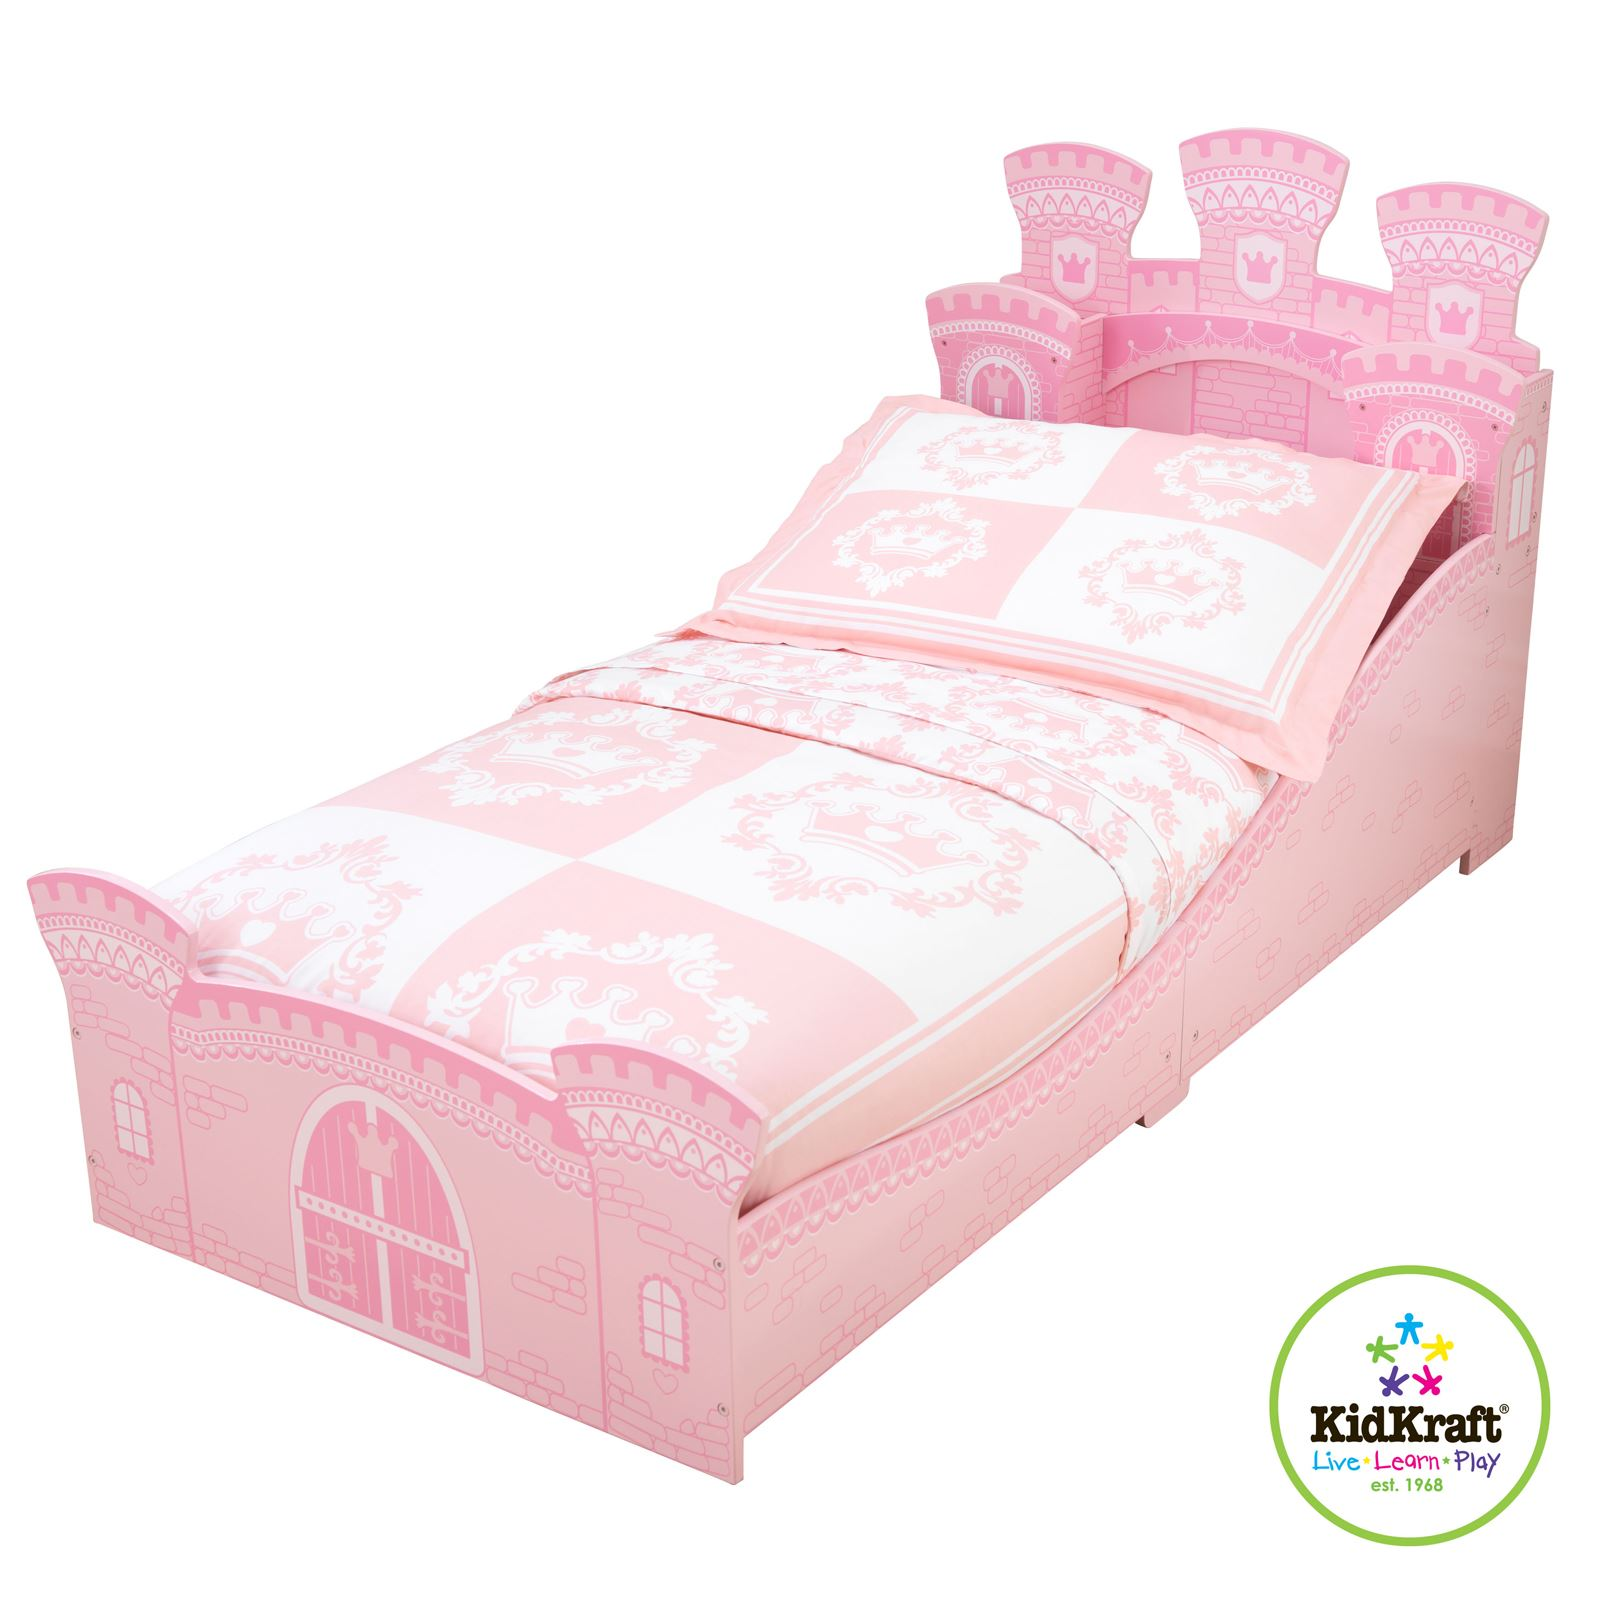 KIDKRAFT PRINCESS CASTLE JUNIOR TODDLER BED NEW BEDROOM